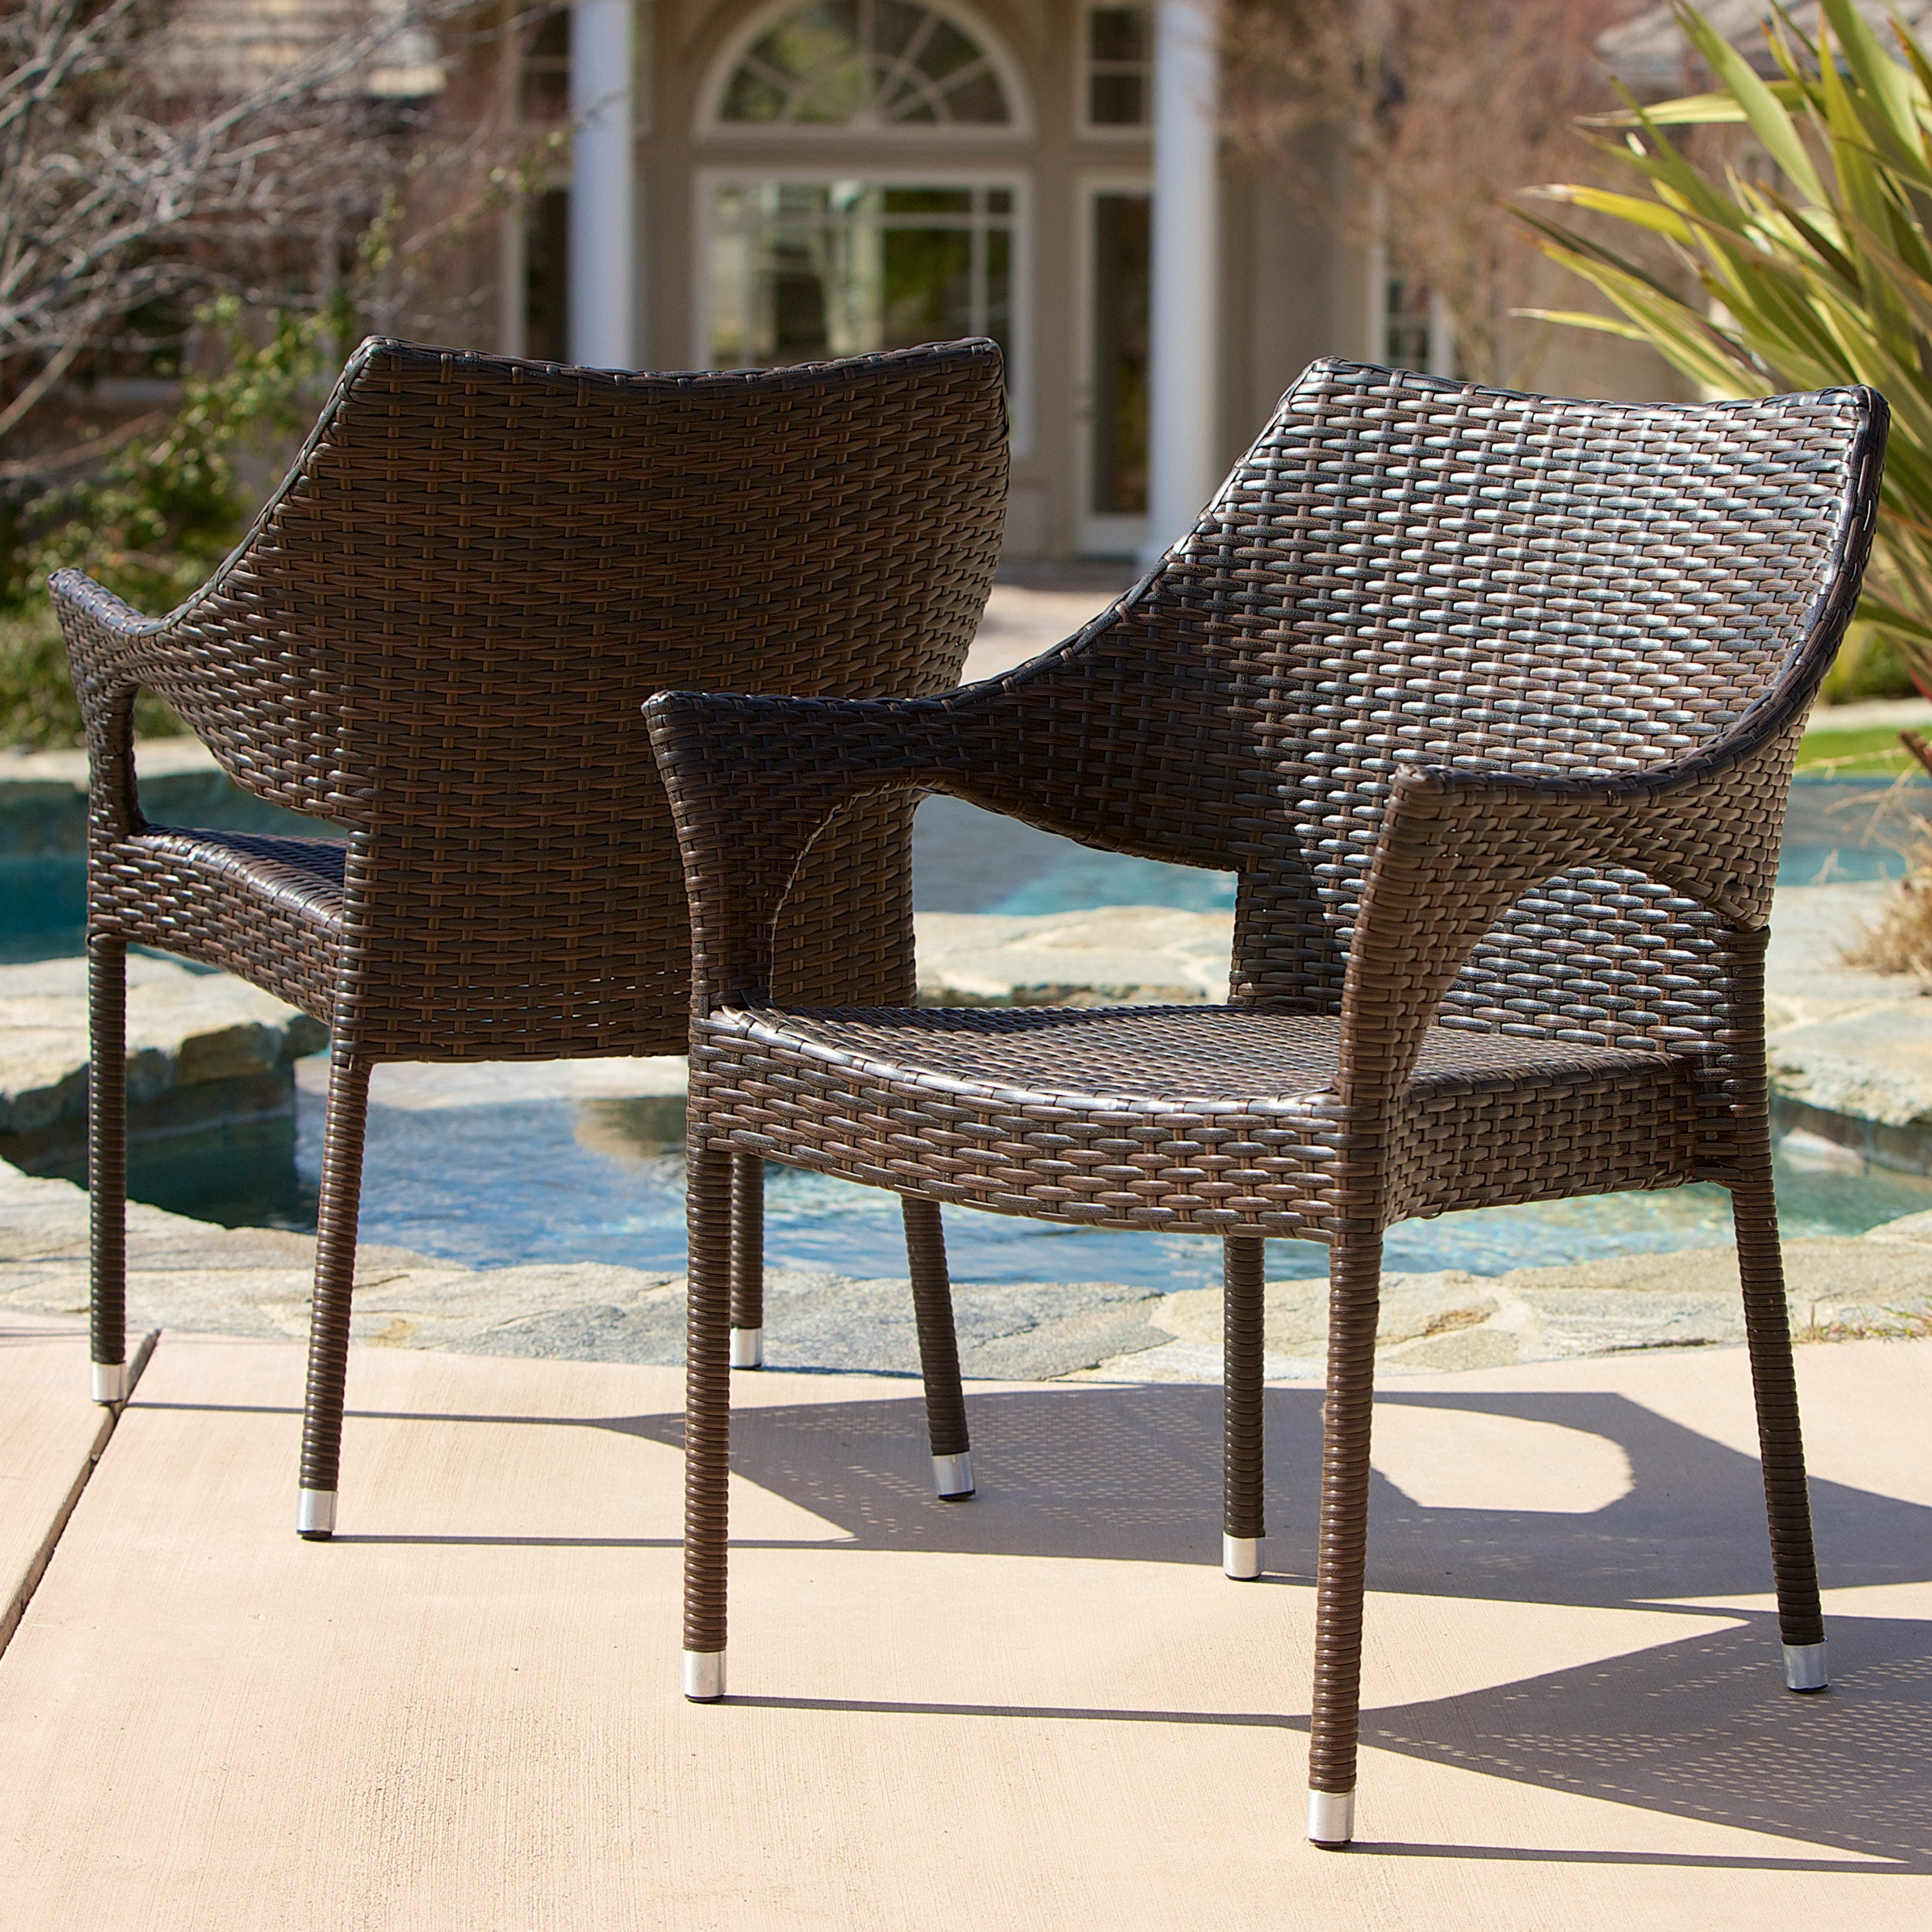 Marvelous Sinclair Outdoor 7 Piece Wicker Dining Set By Christopher Knight Home    Free Shipping Today   Overstock.com   17281597